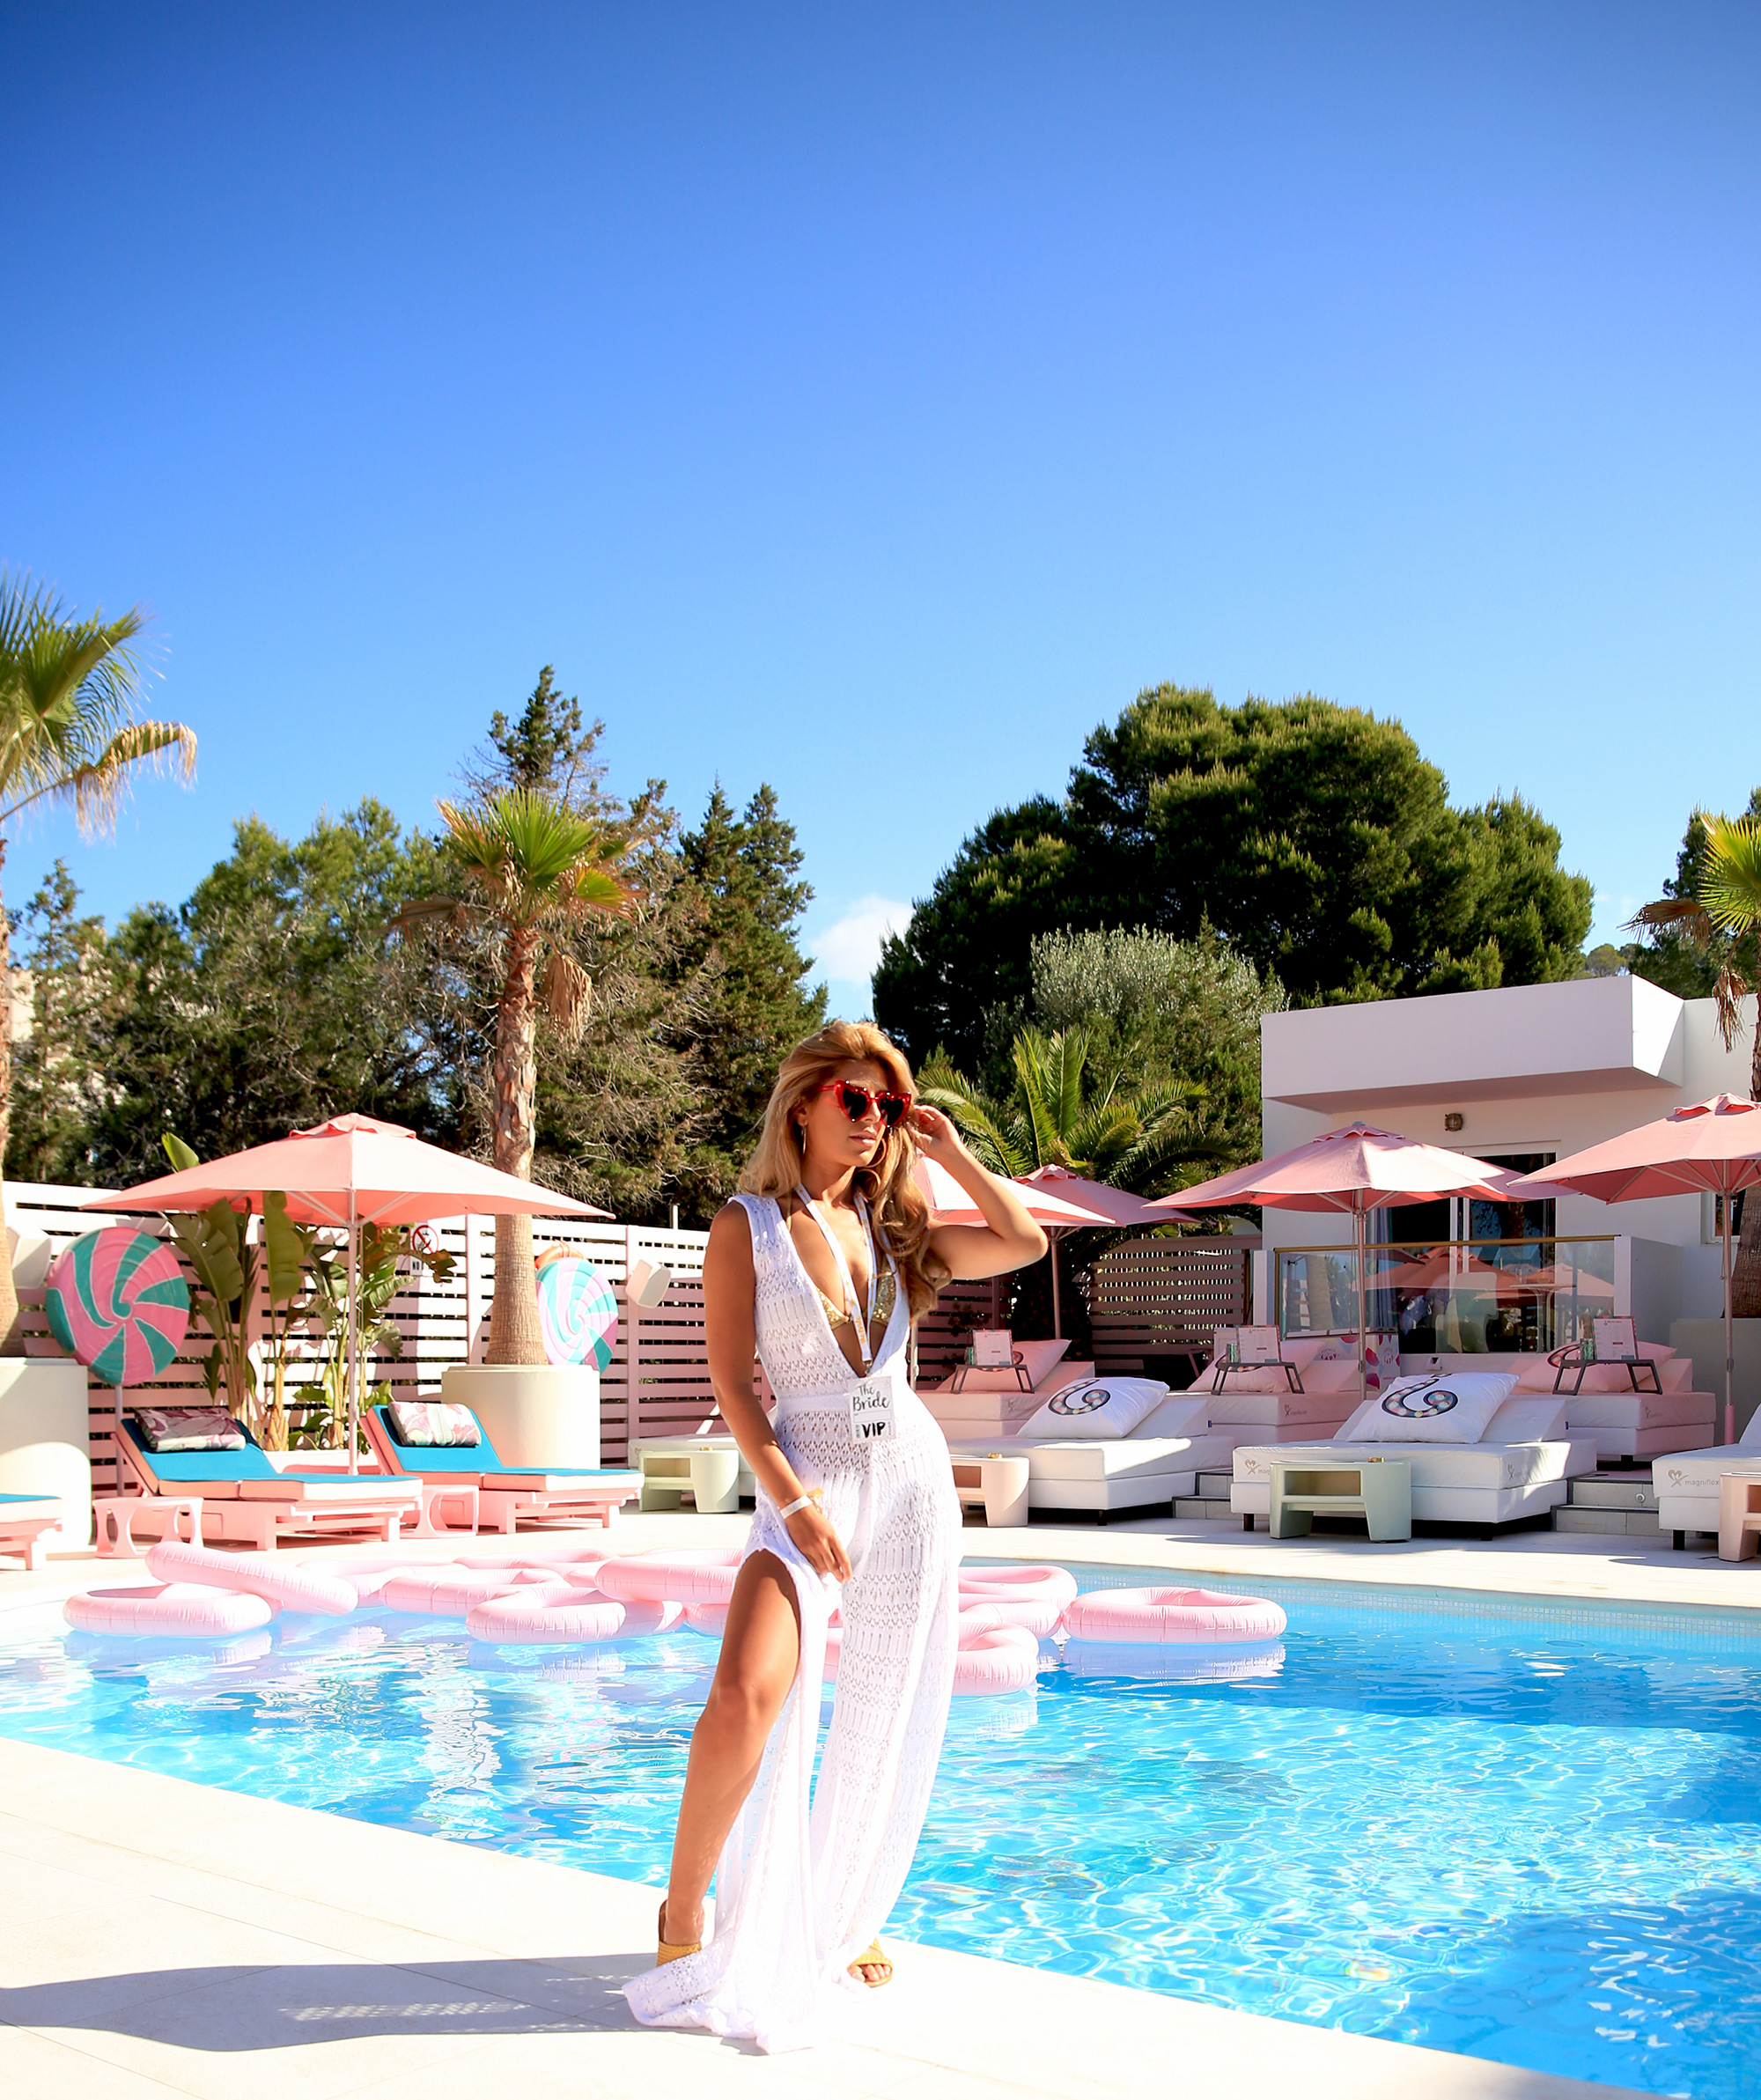 ibiza hen party wiki woo hotel bride to be